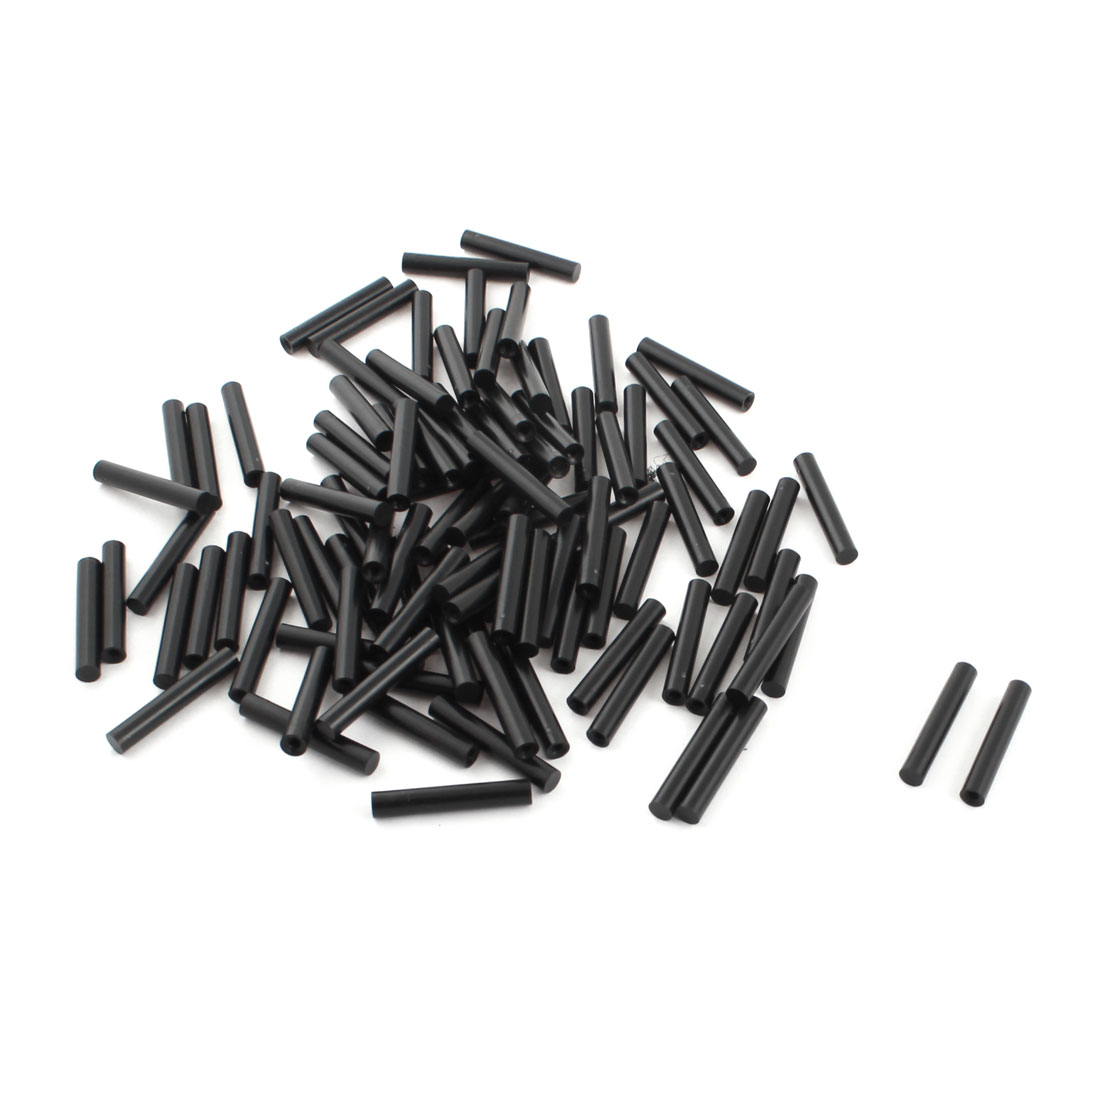 100Pcs 6x35mm PCB Test Flat End Fixture Hardware Parts Plate POM Stand Fixed Rod Black